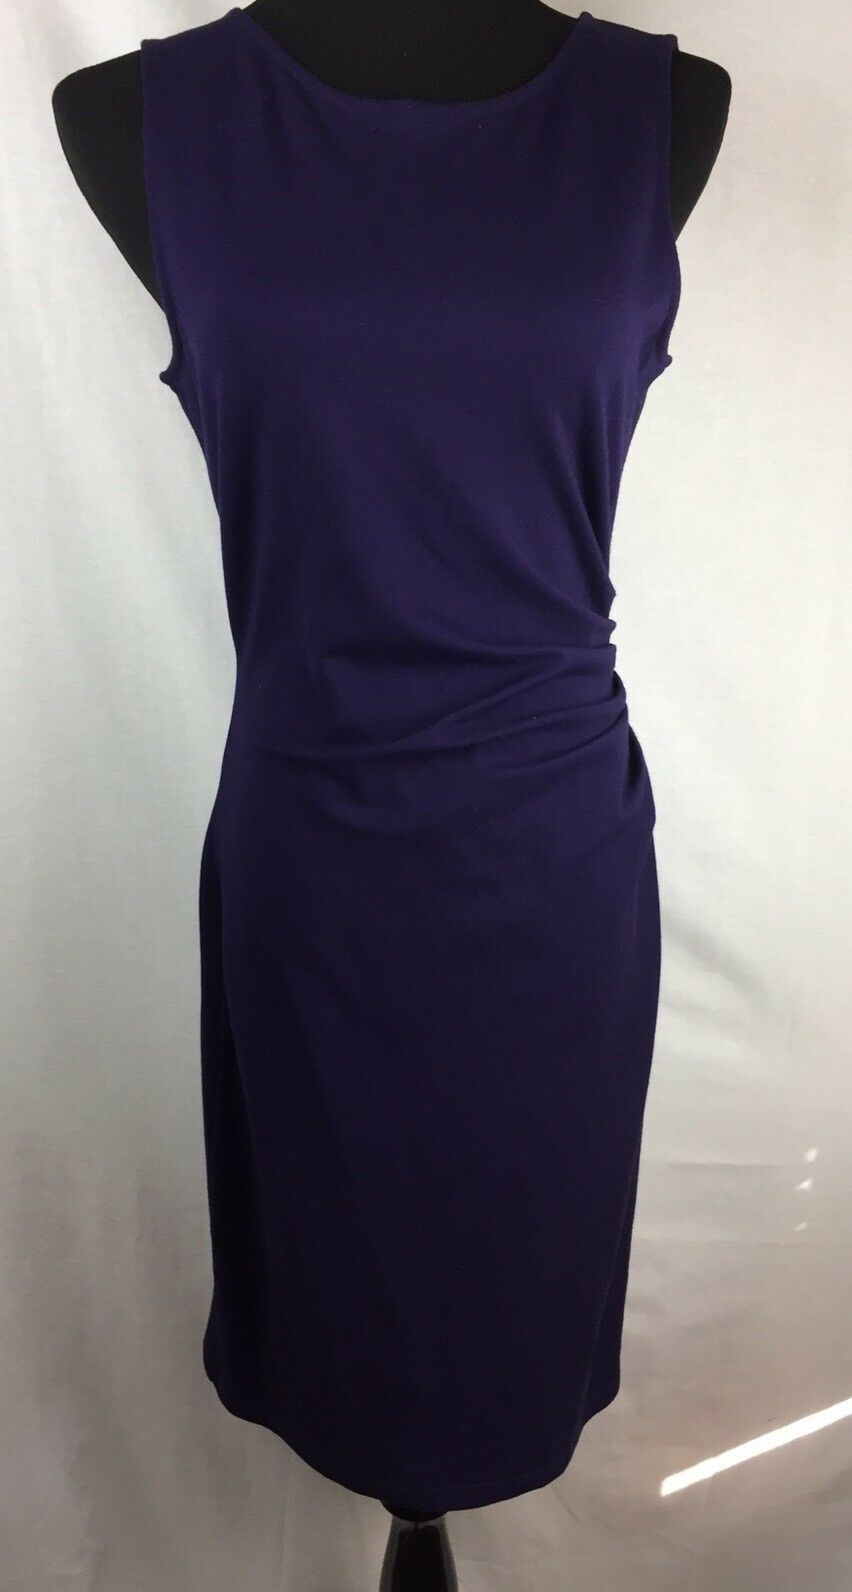 a7266a23ce KENNETH Purple Sheath Dress Ruched Full Zip Bodycon Sleeveless 10 Dress  COLE nnuetw1464-Dresses